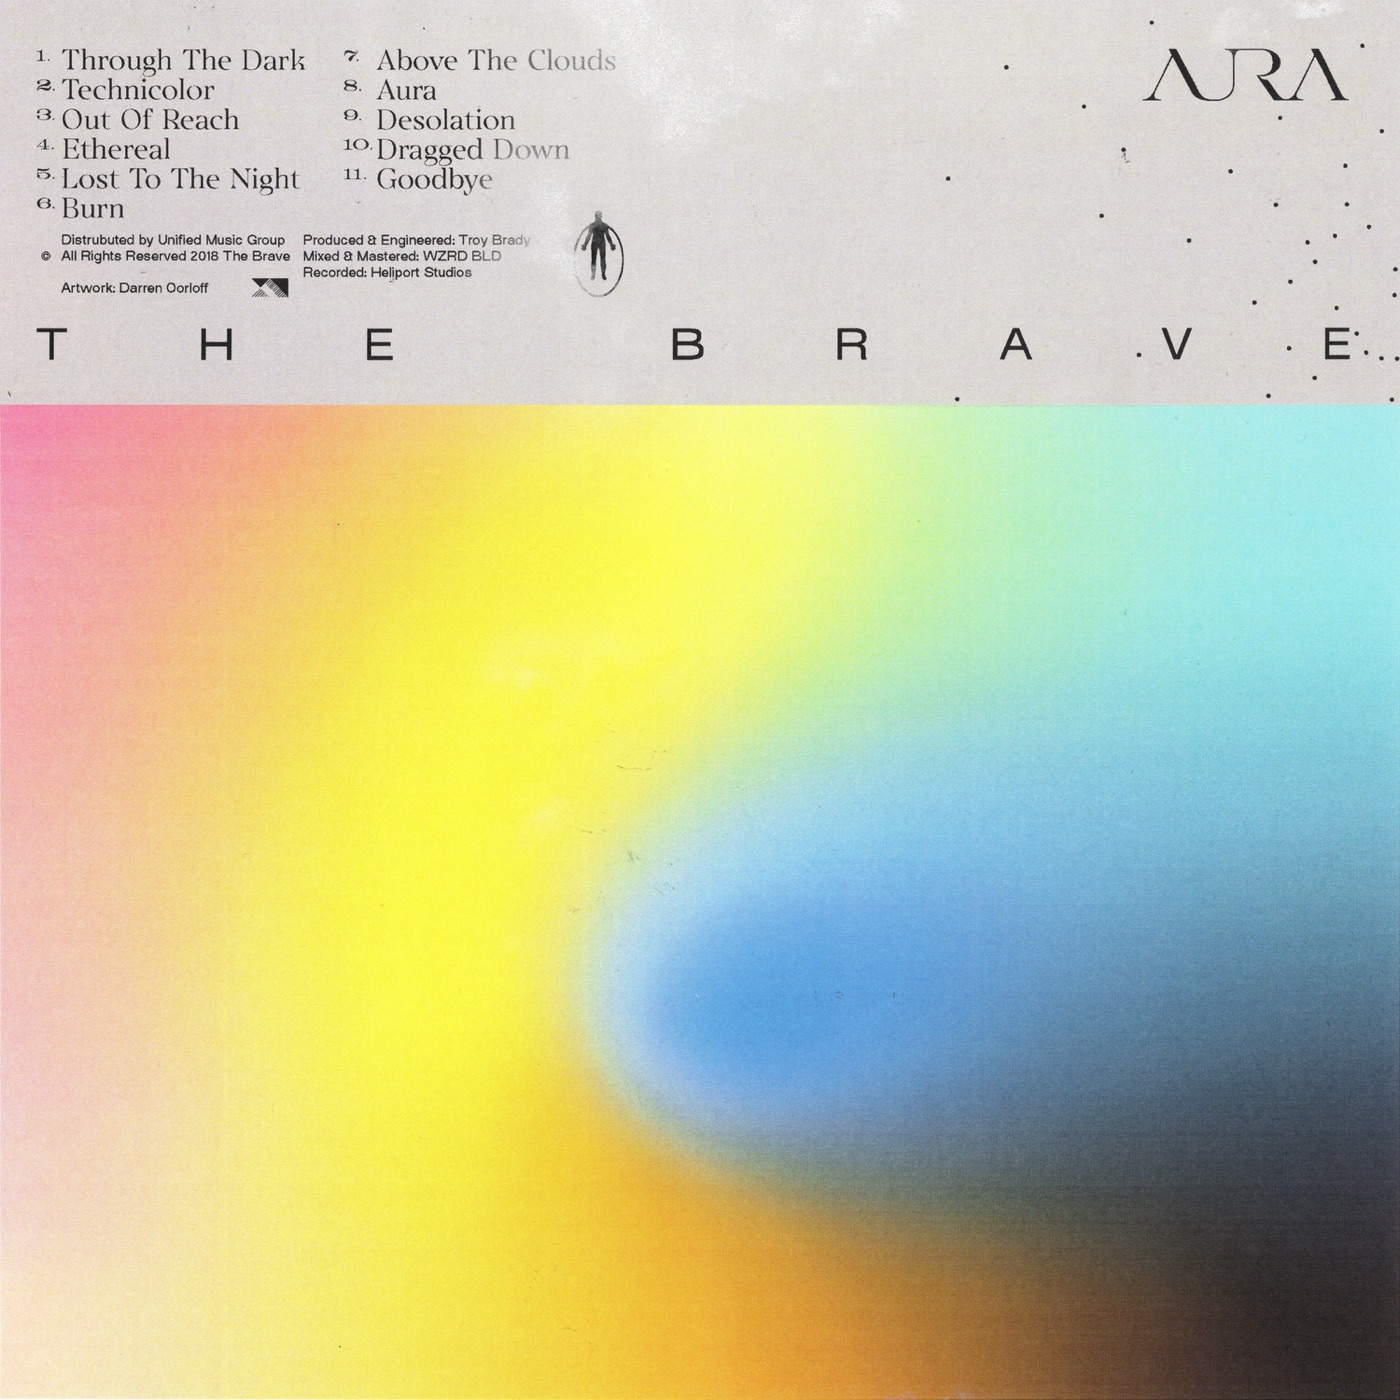 The Brave - Desolation [Single] (2019)